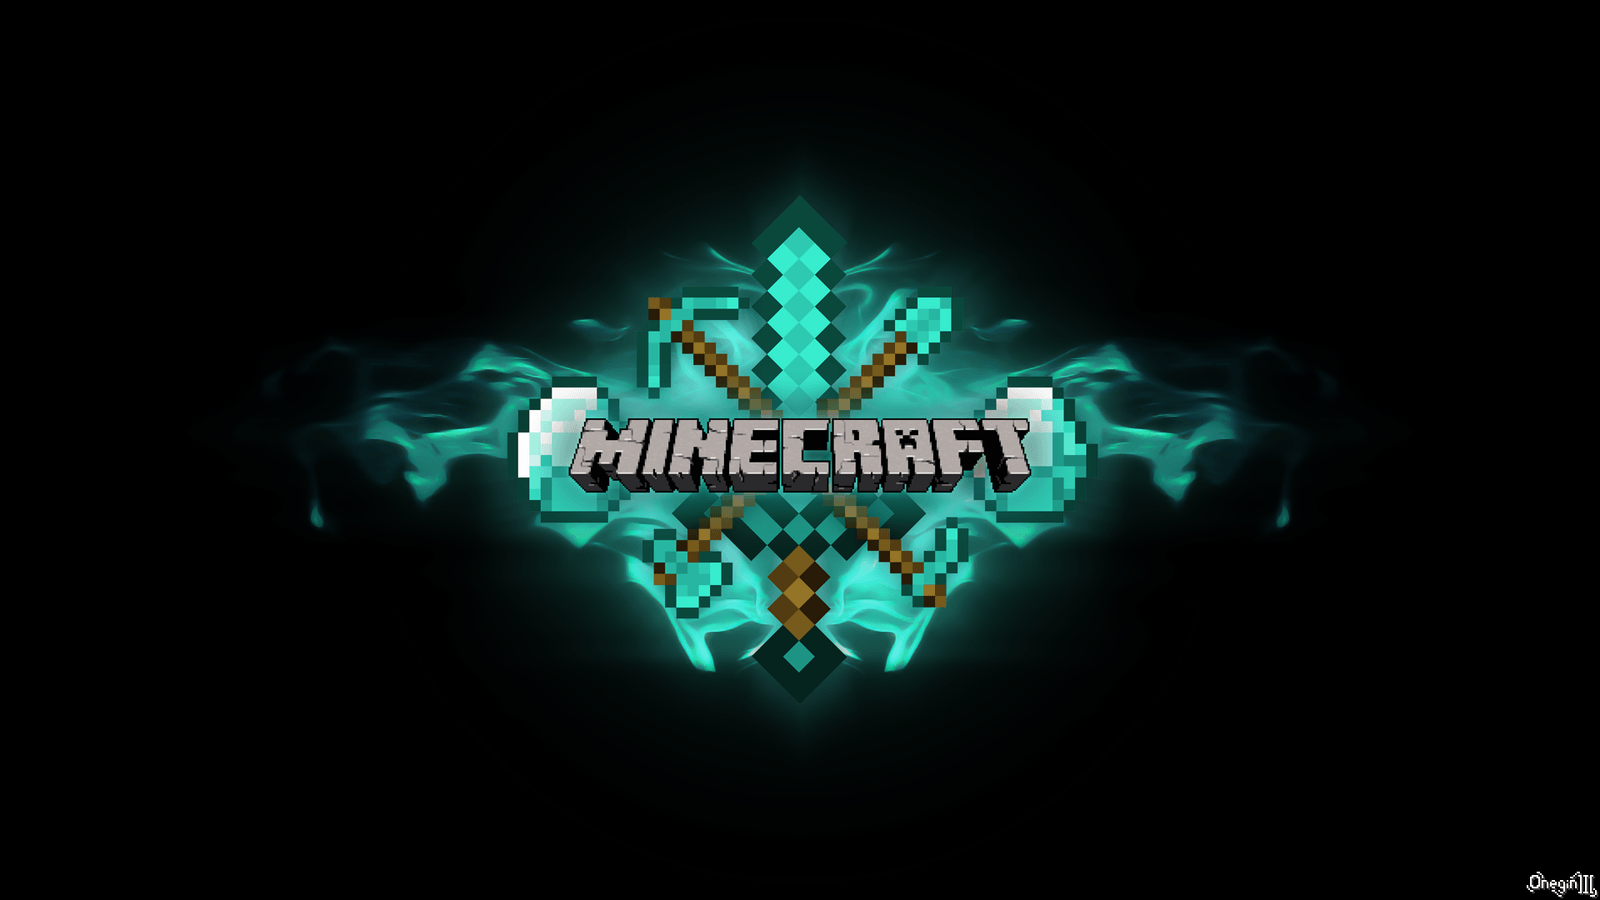 43+ Cool minecraft wallpapers hd 4k